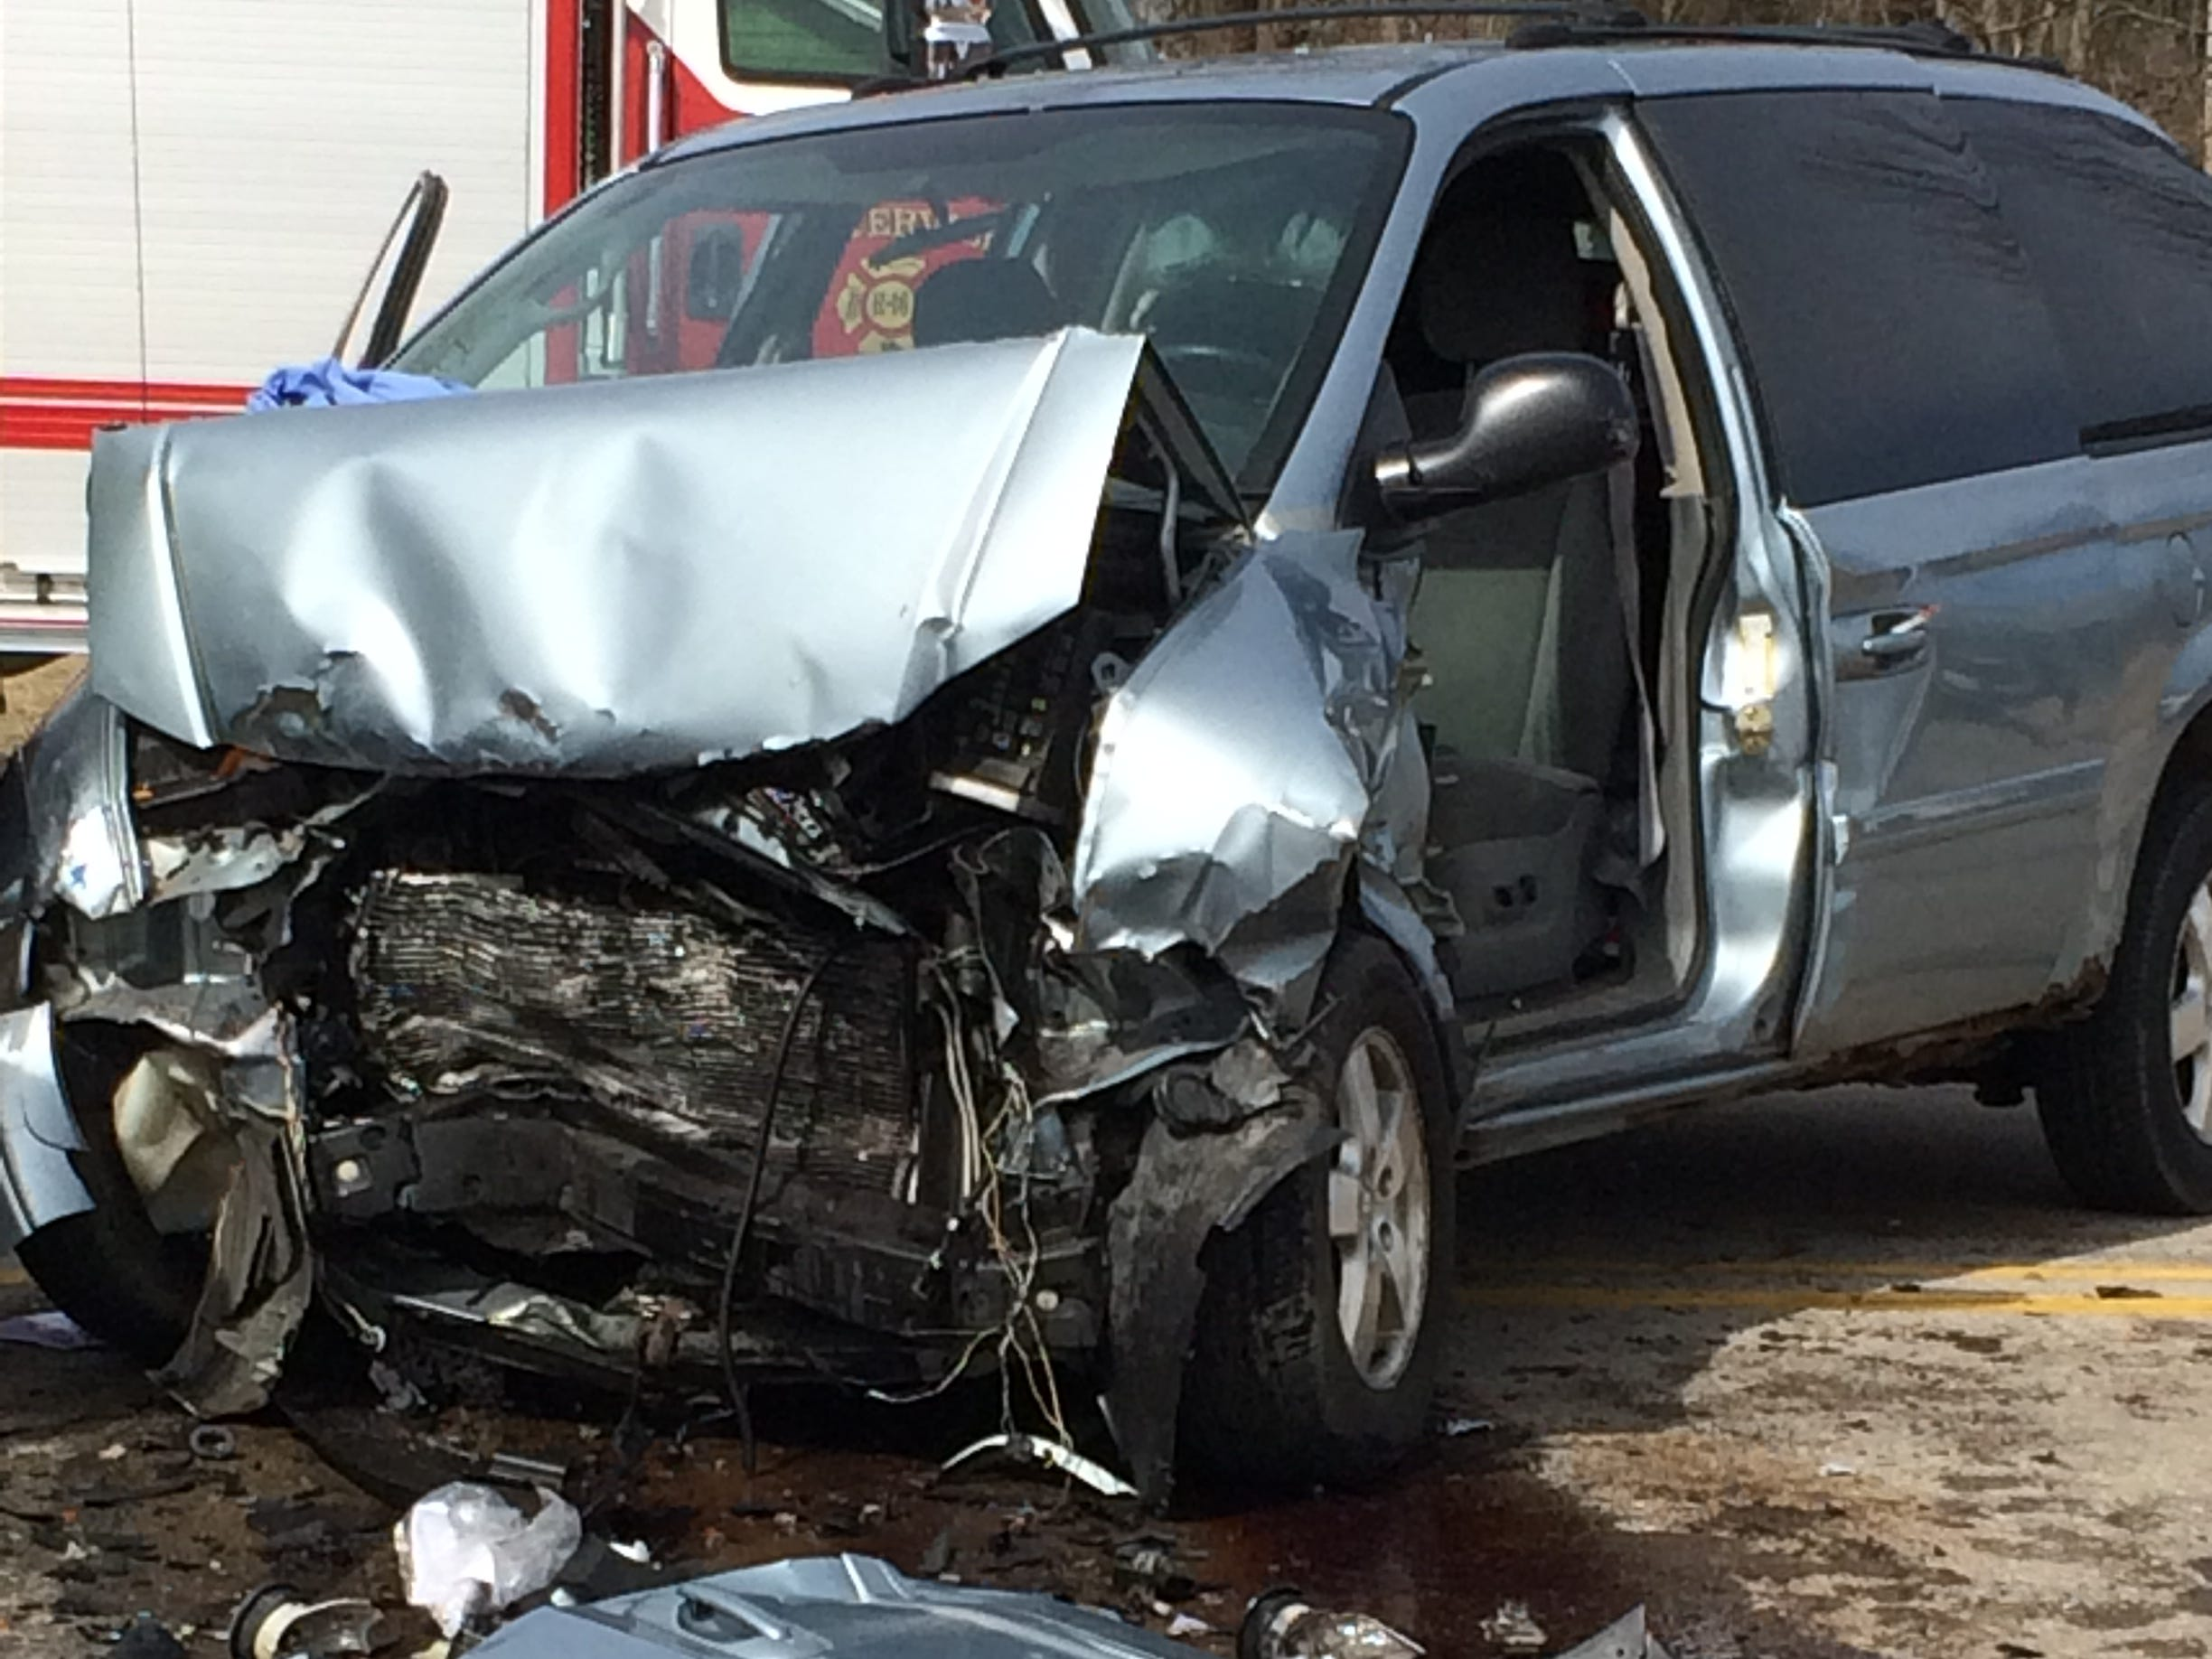 A Dodge Grand Caravan was severely damaged Tuesday during an accident in the 3900 block of National Road West.